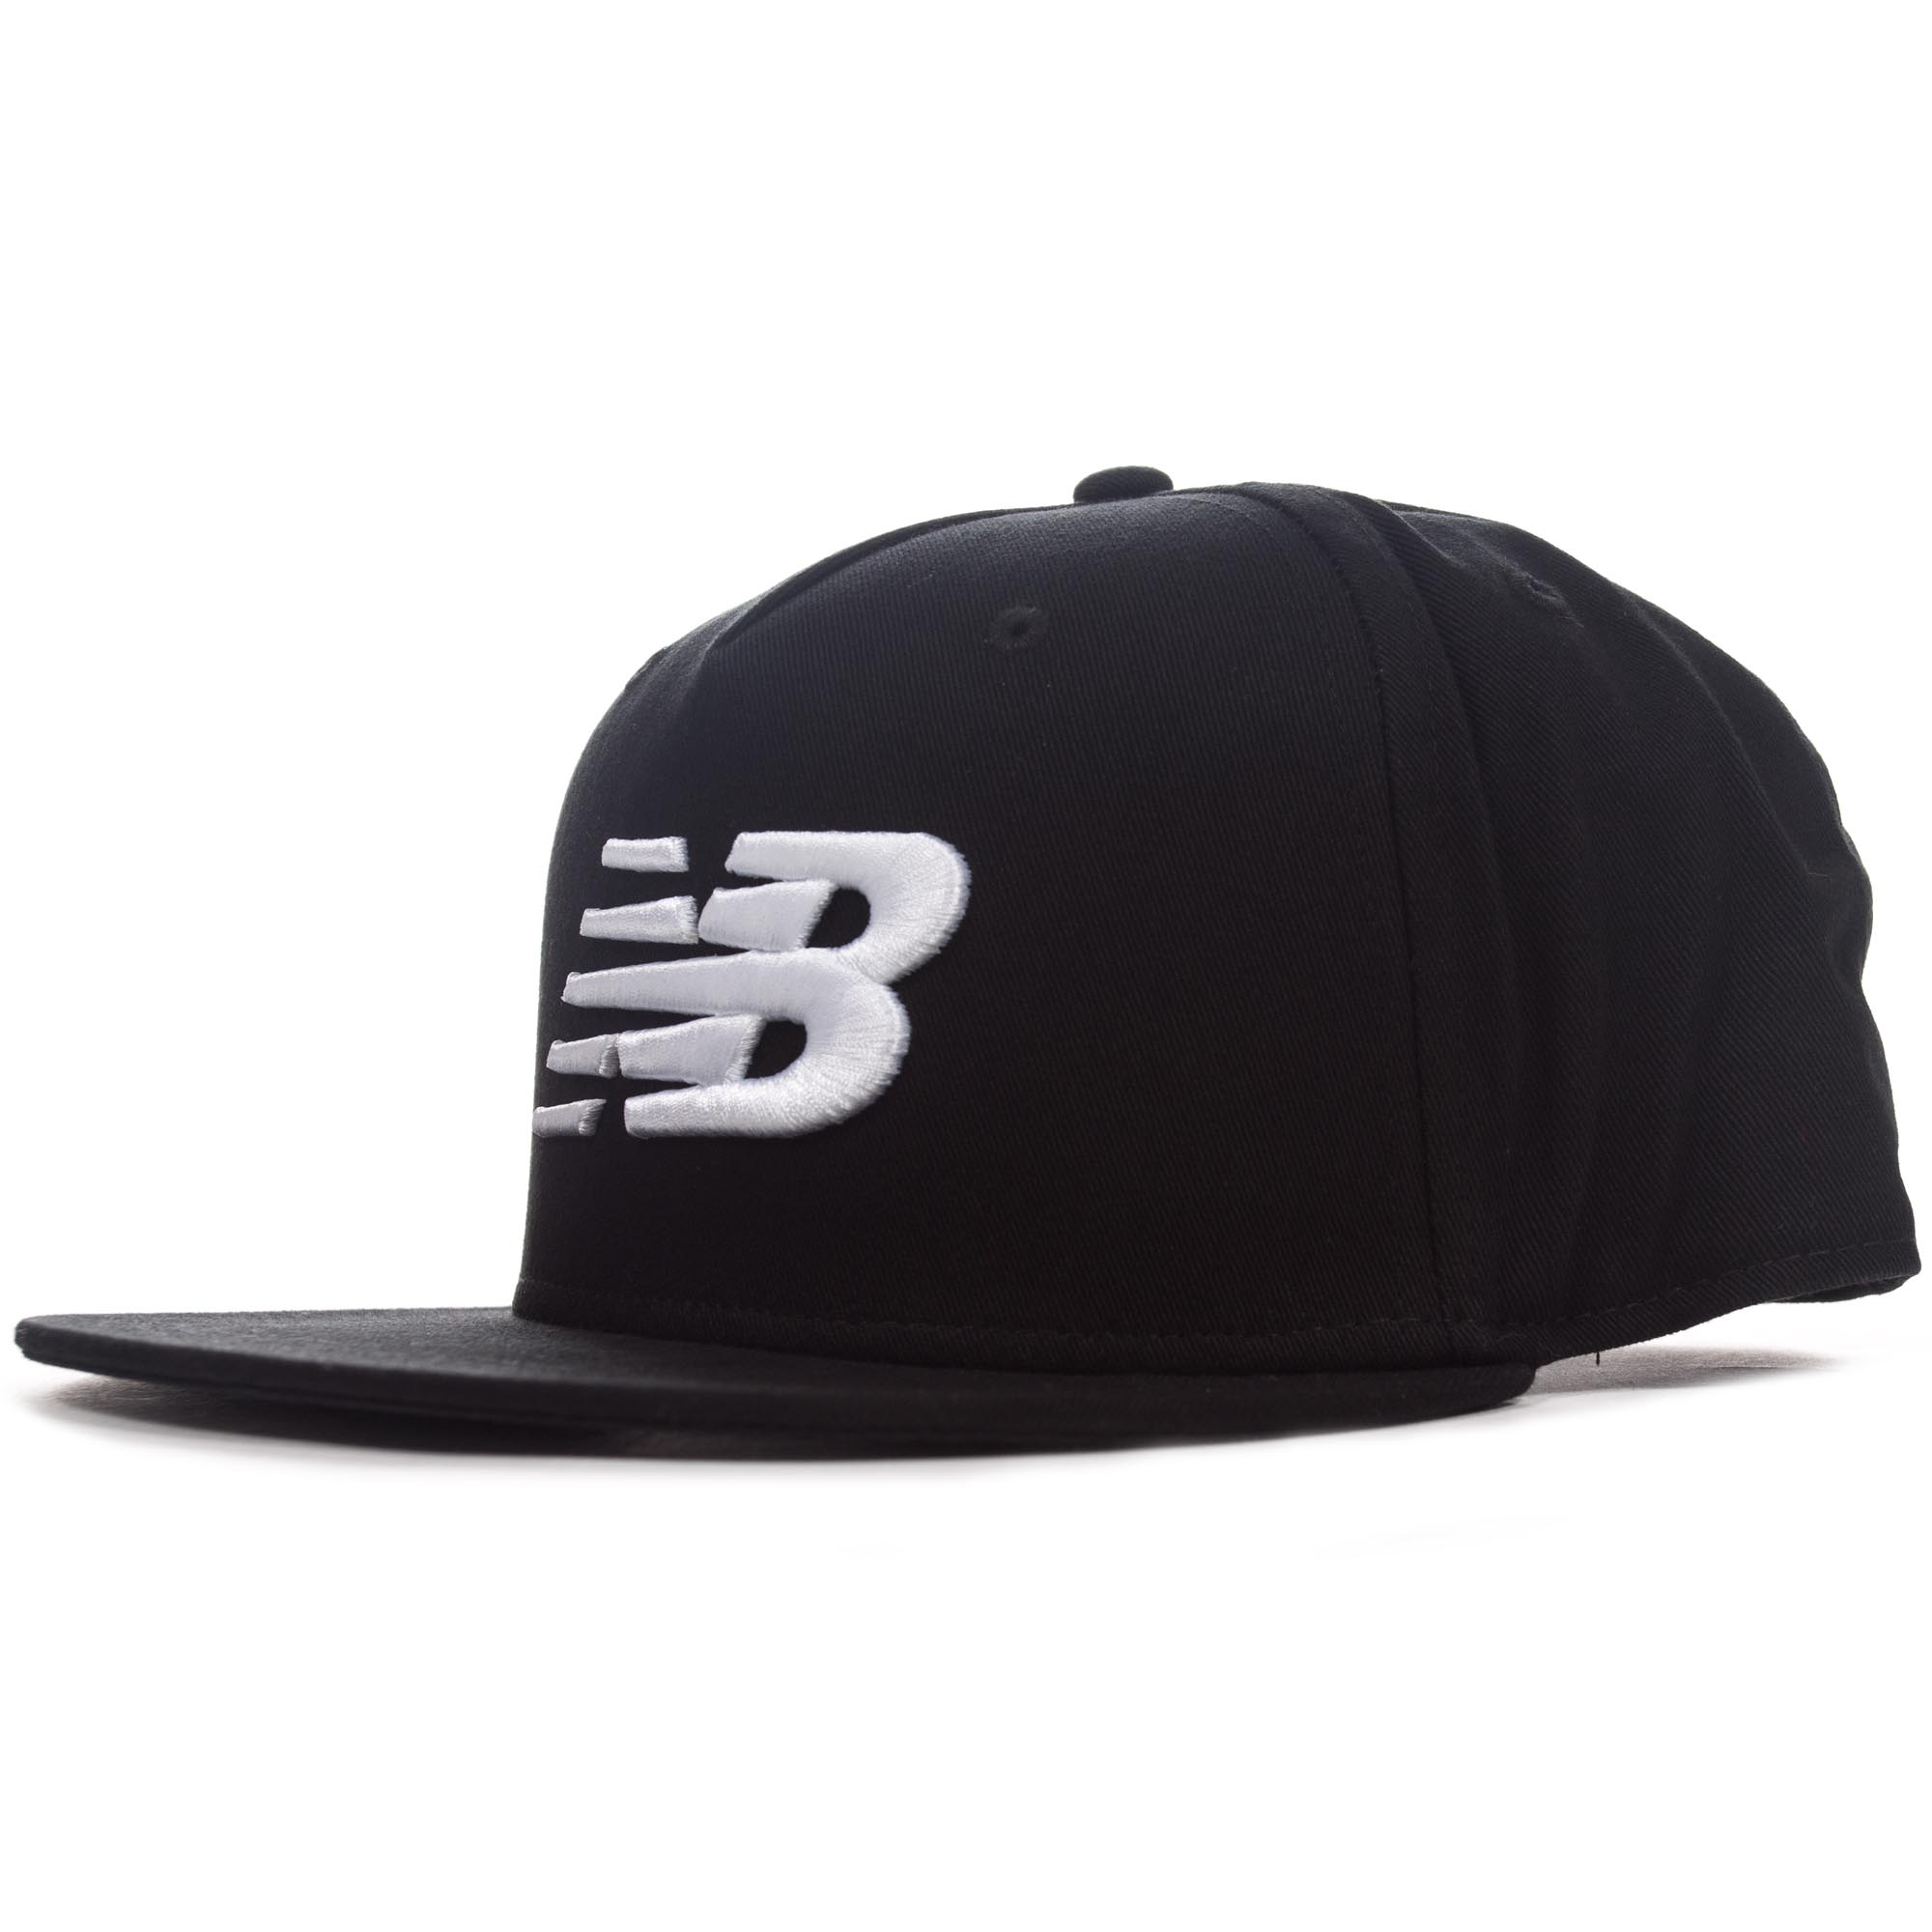 08dc986ee67 Details about New Balance Mens 5-Panel Pro II Logo Snapback Baseball Cap Hat